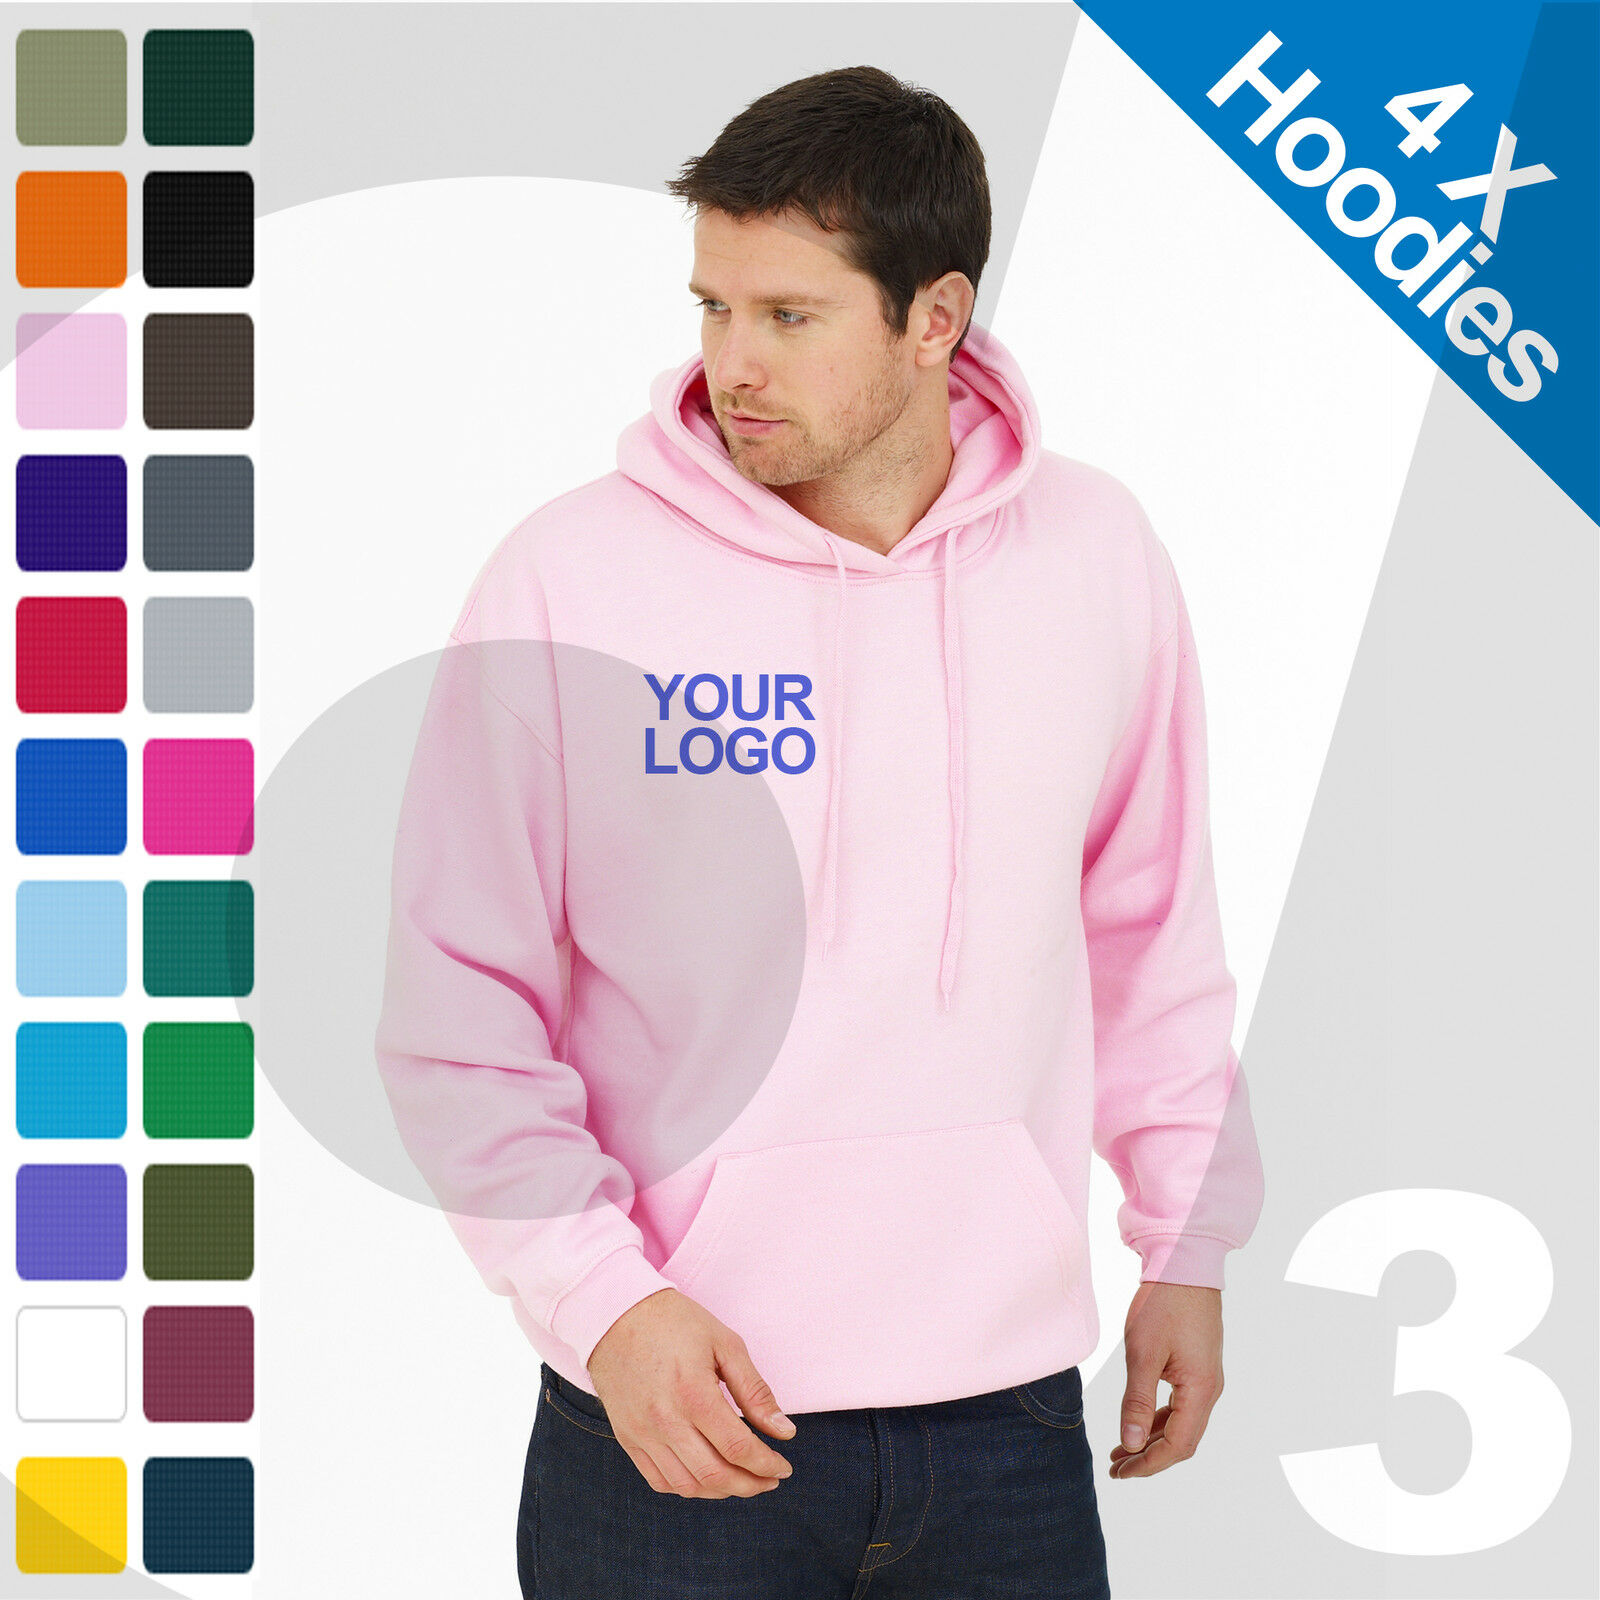 4 X Personalised EmbroideROT / Printed Hoodies Customised Workwear Text/Logo